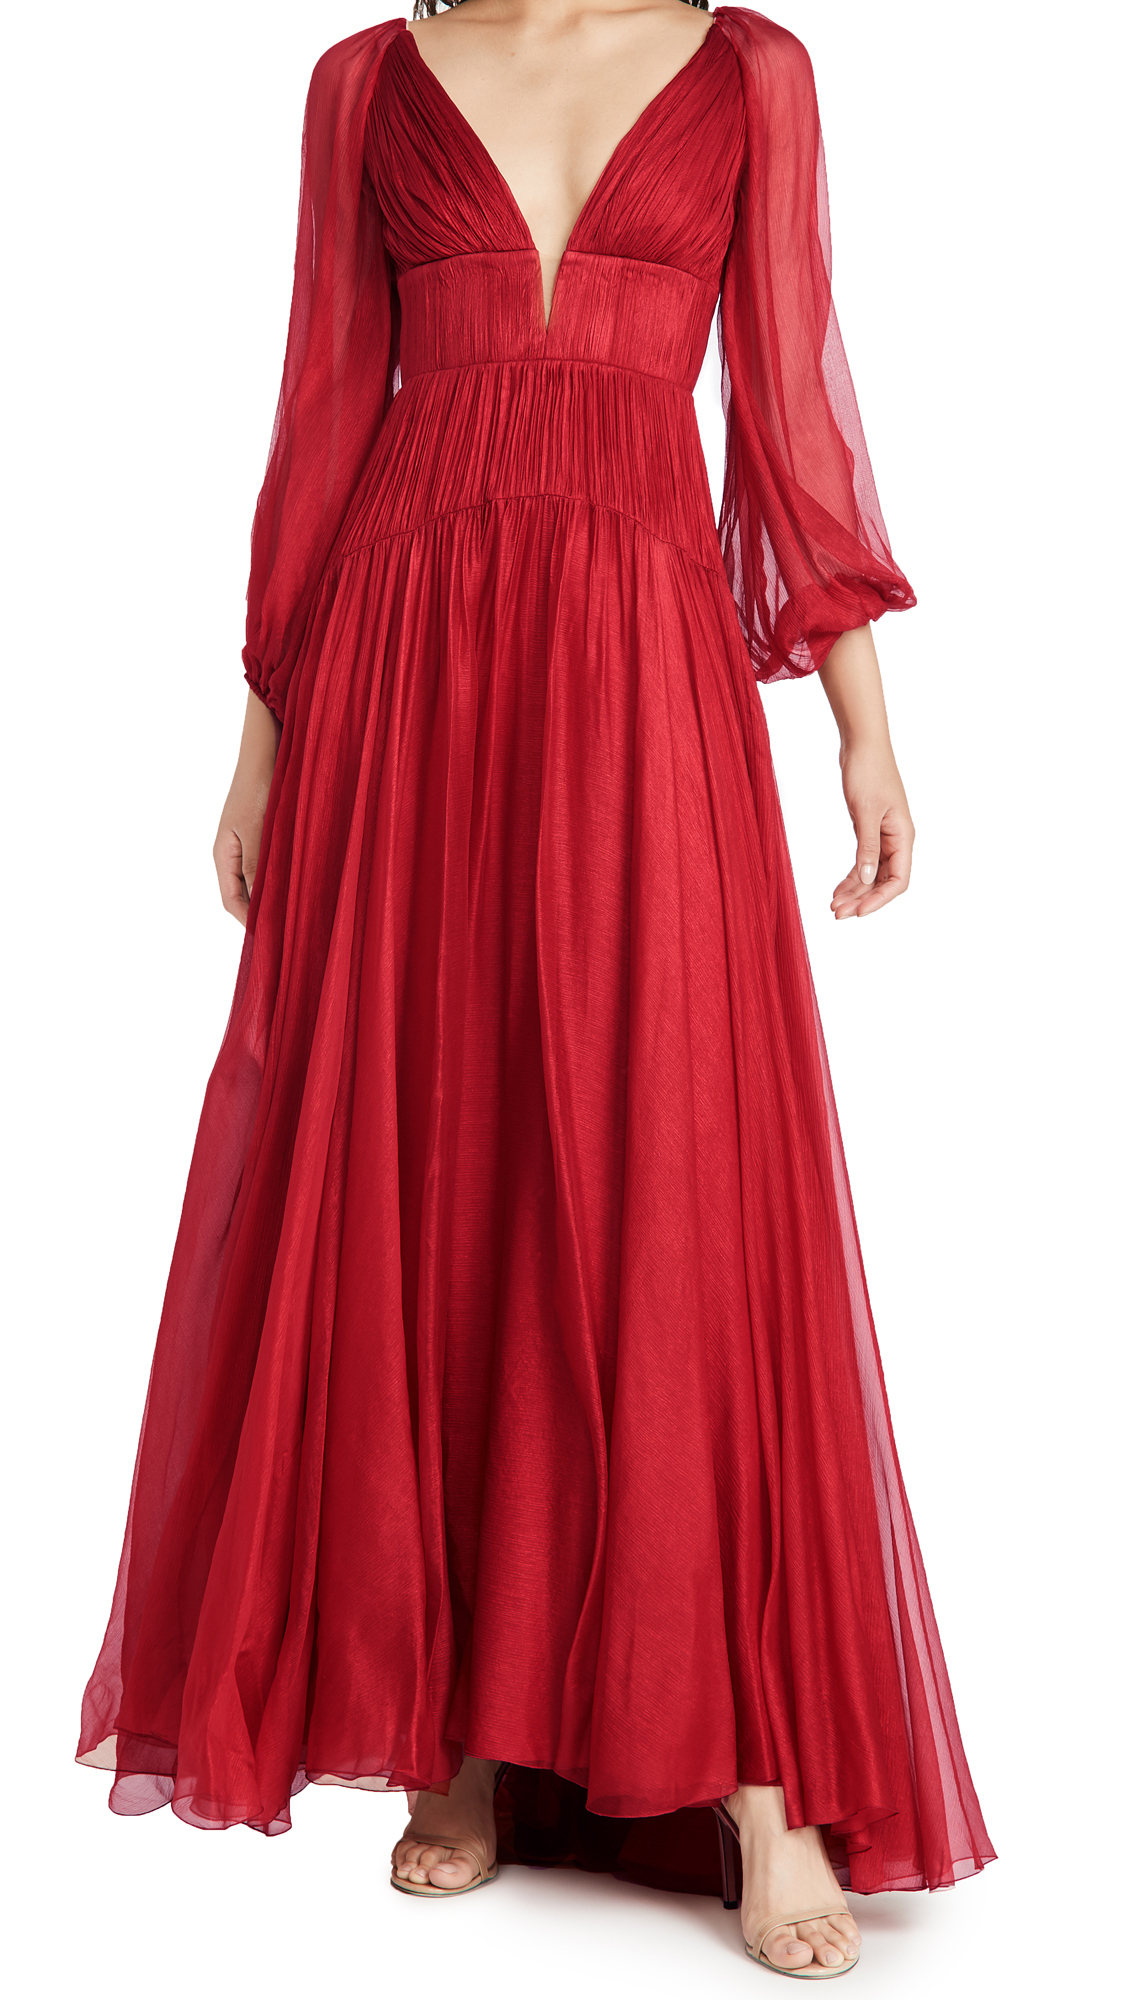 Maria Lucia Hohan Zeena Dress